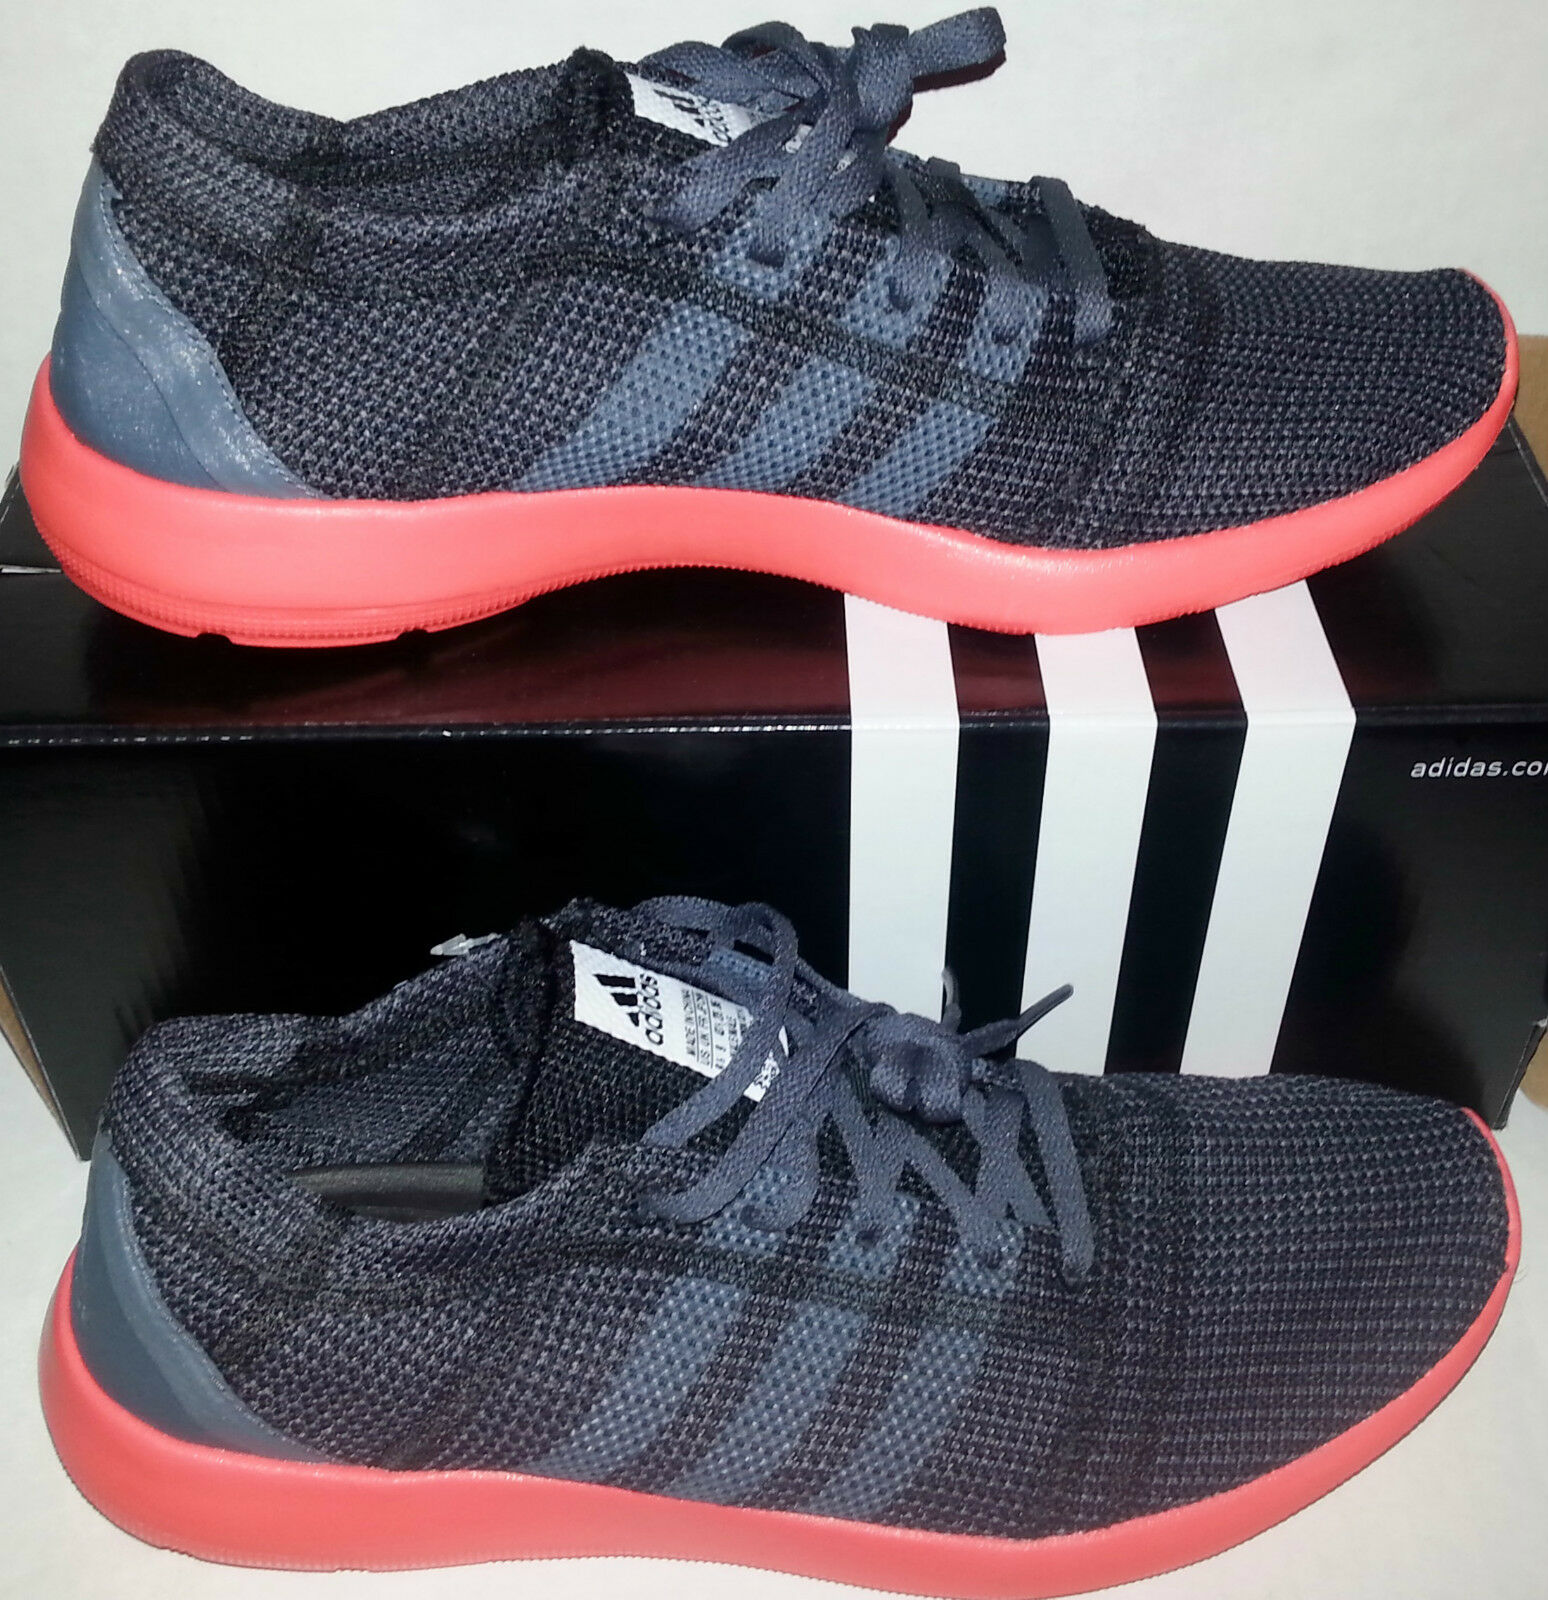 Adidas ELEMENT REFINE TRICOT ONIX/BLACK/SOLAR RED mens RUNNING COURSE SHOES The latest discount shoes for men and women